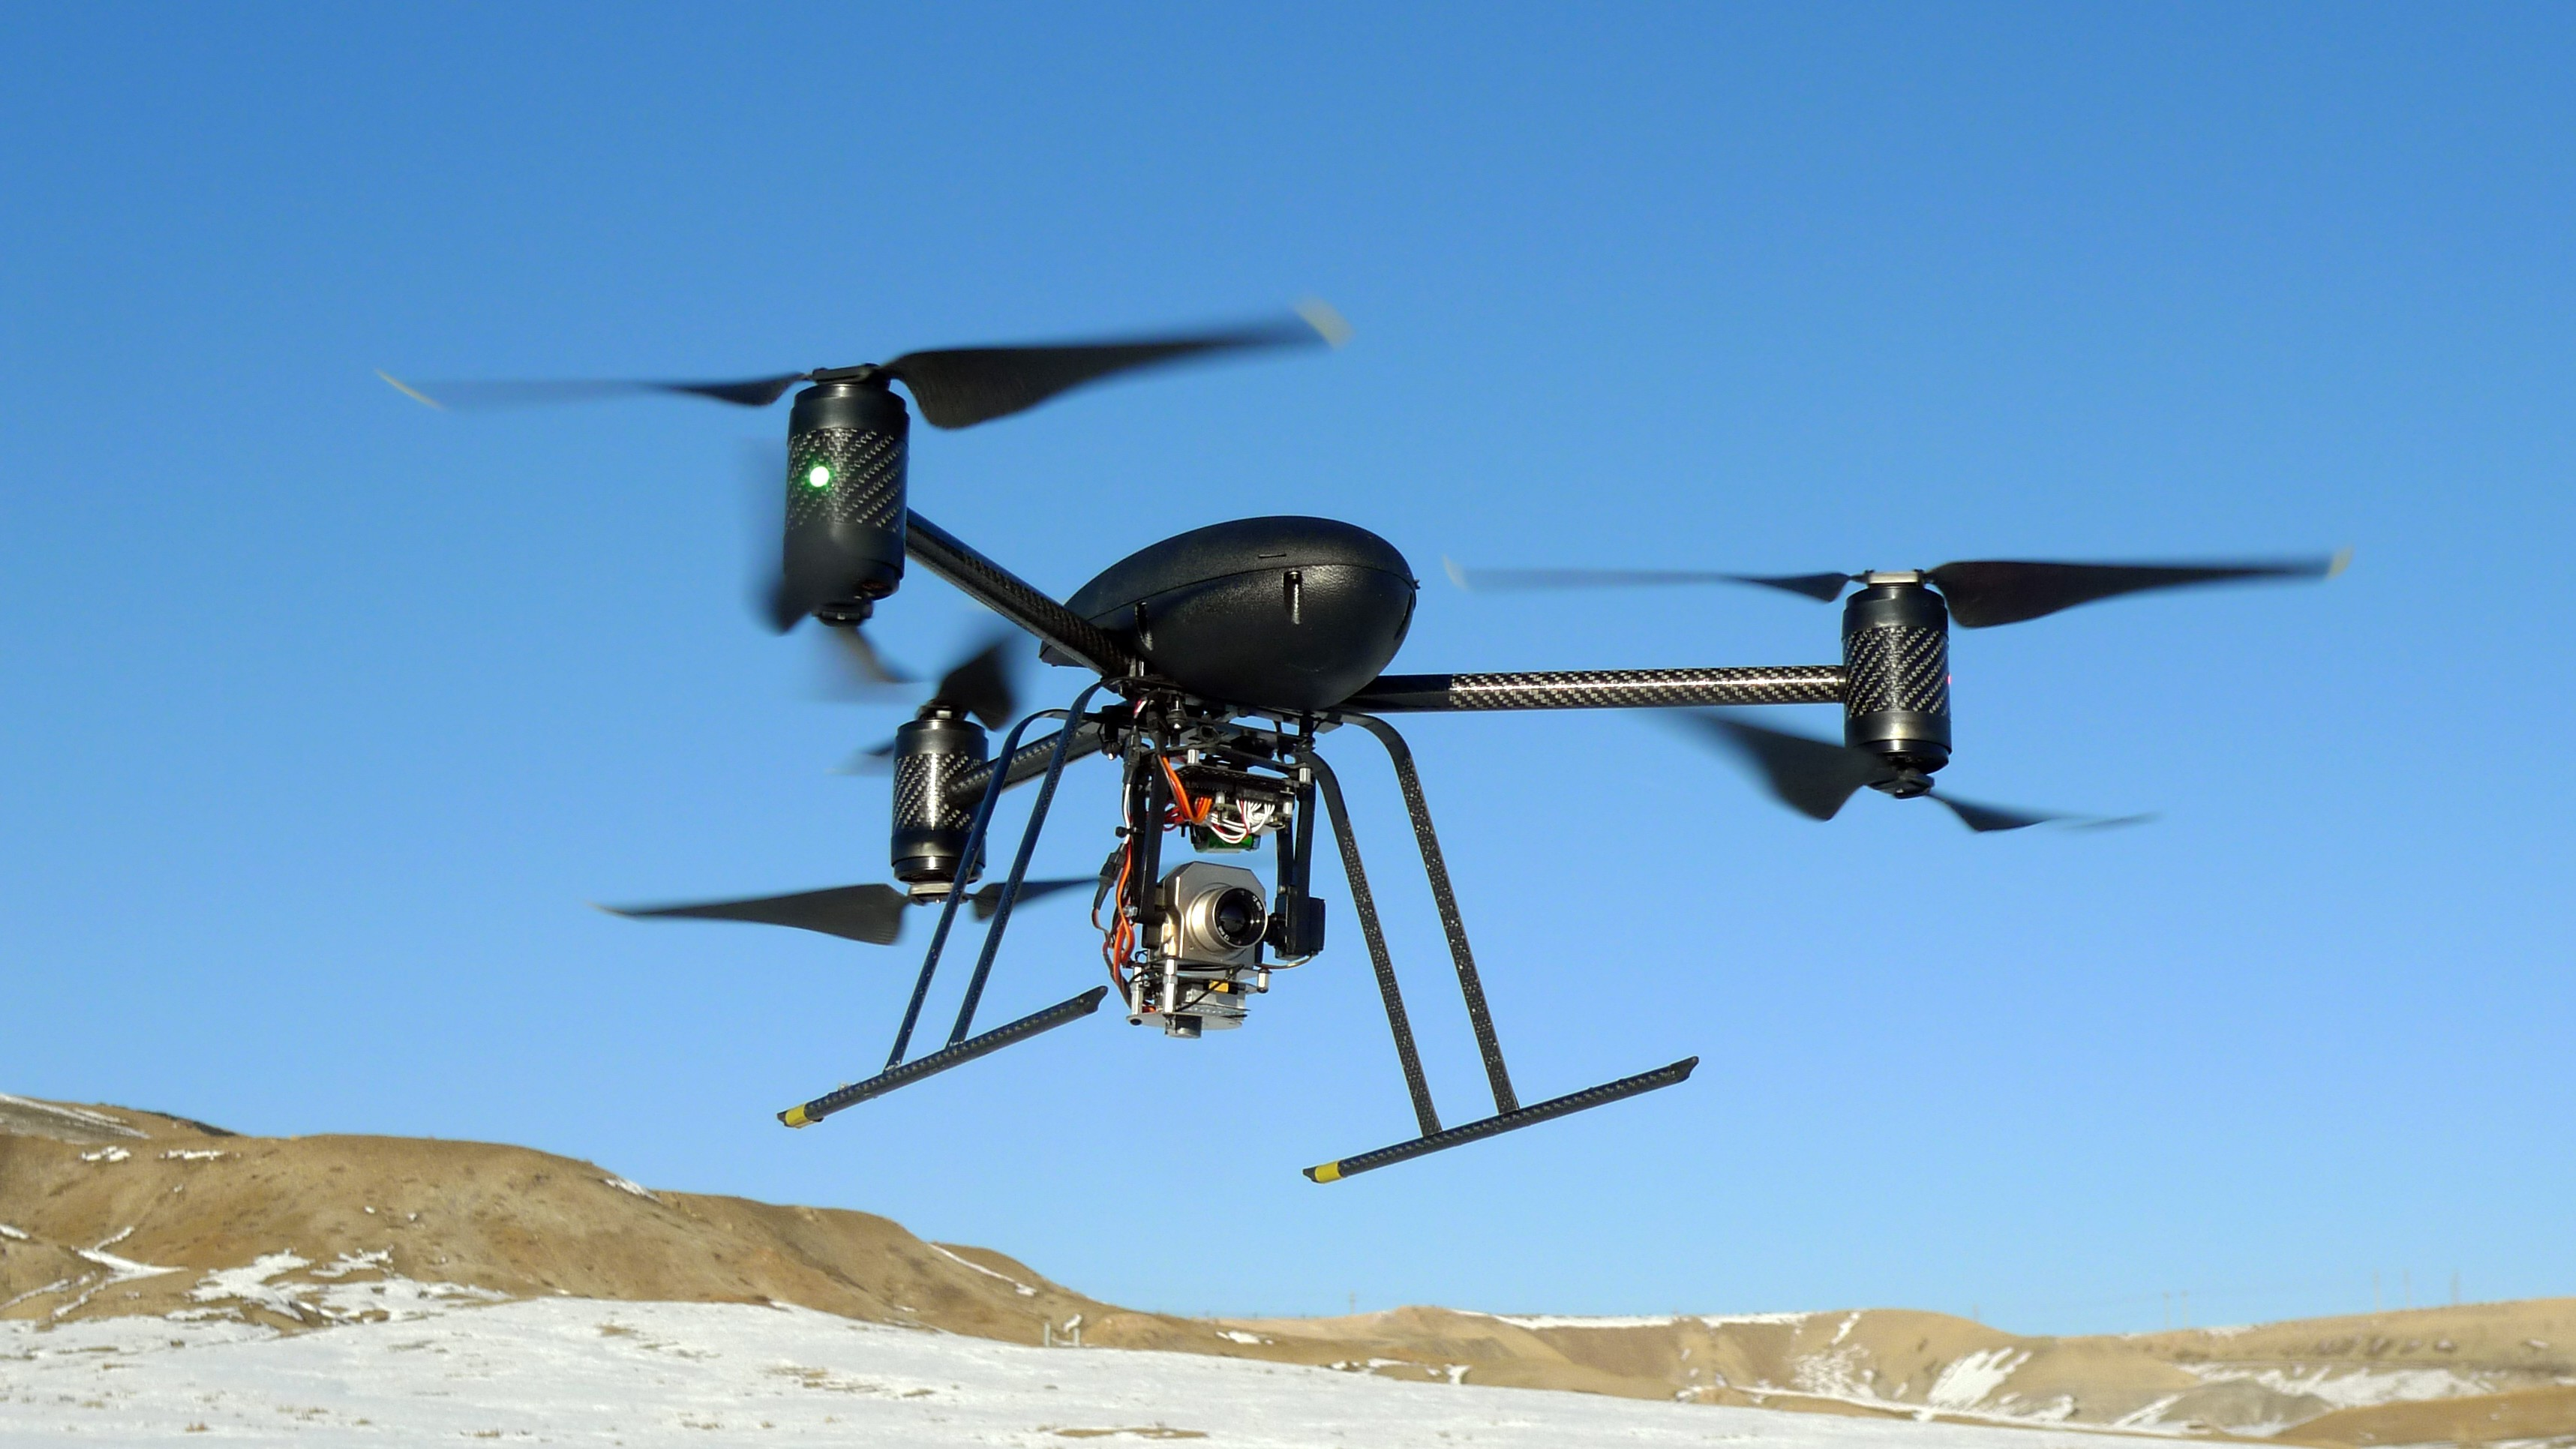 A 'Gift' for the LAPD: Two Surveillance Drones Kicked Out of Seattle